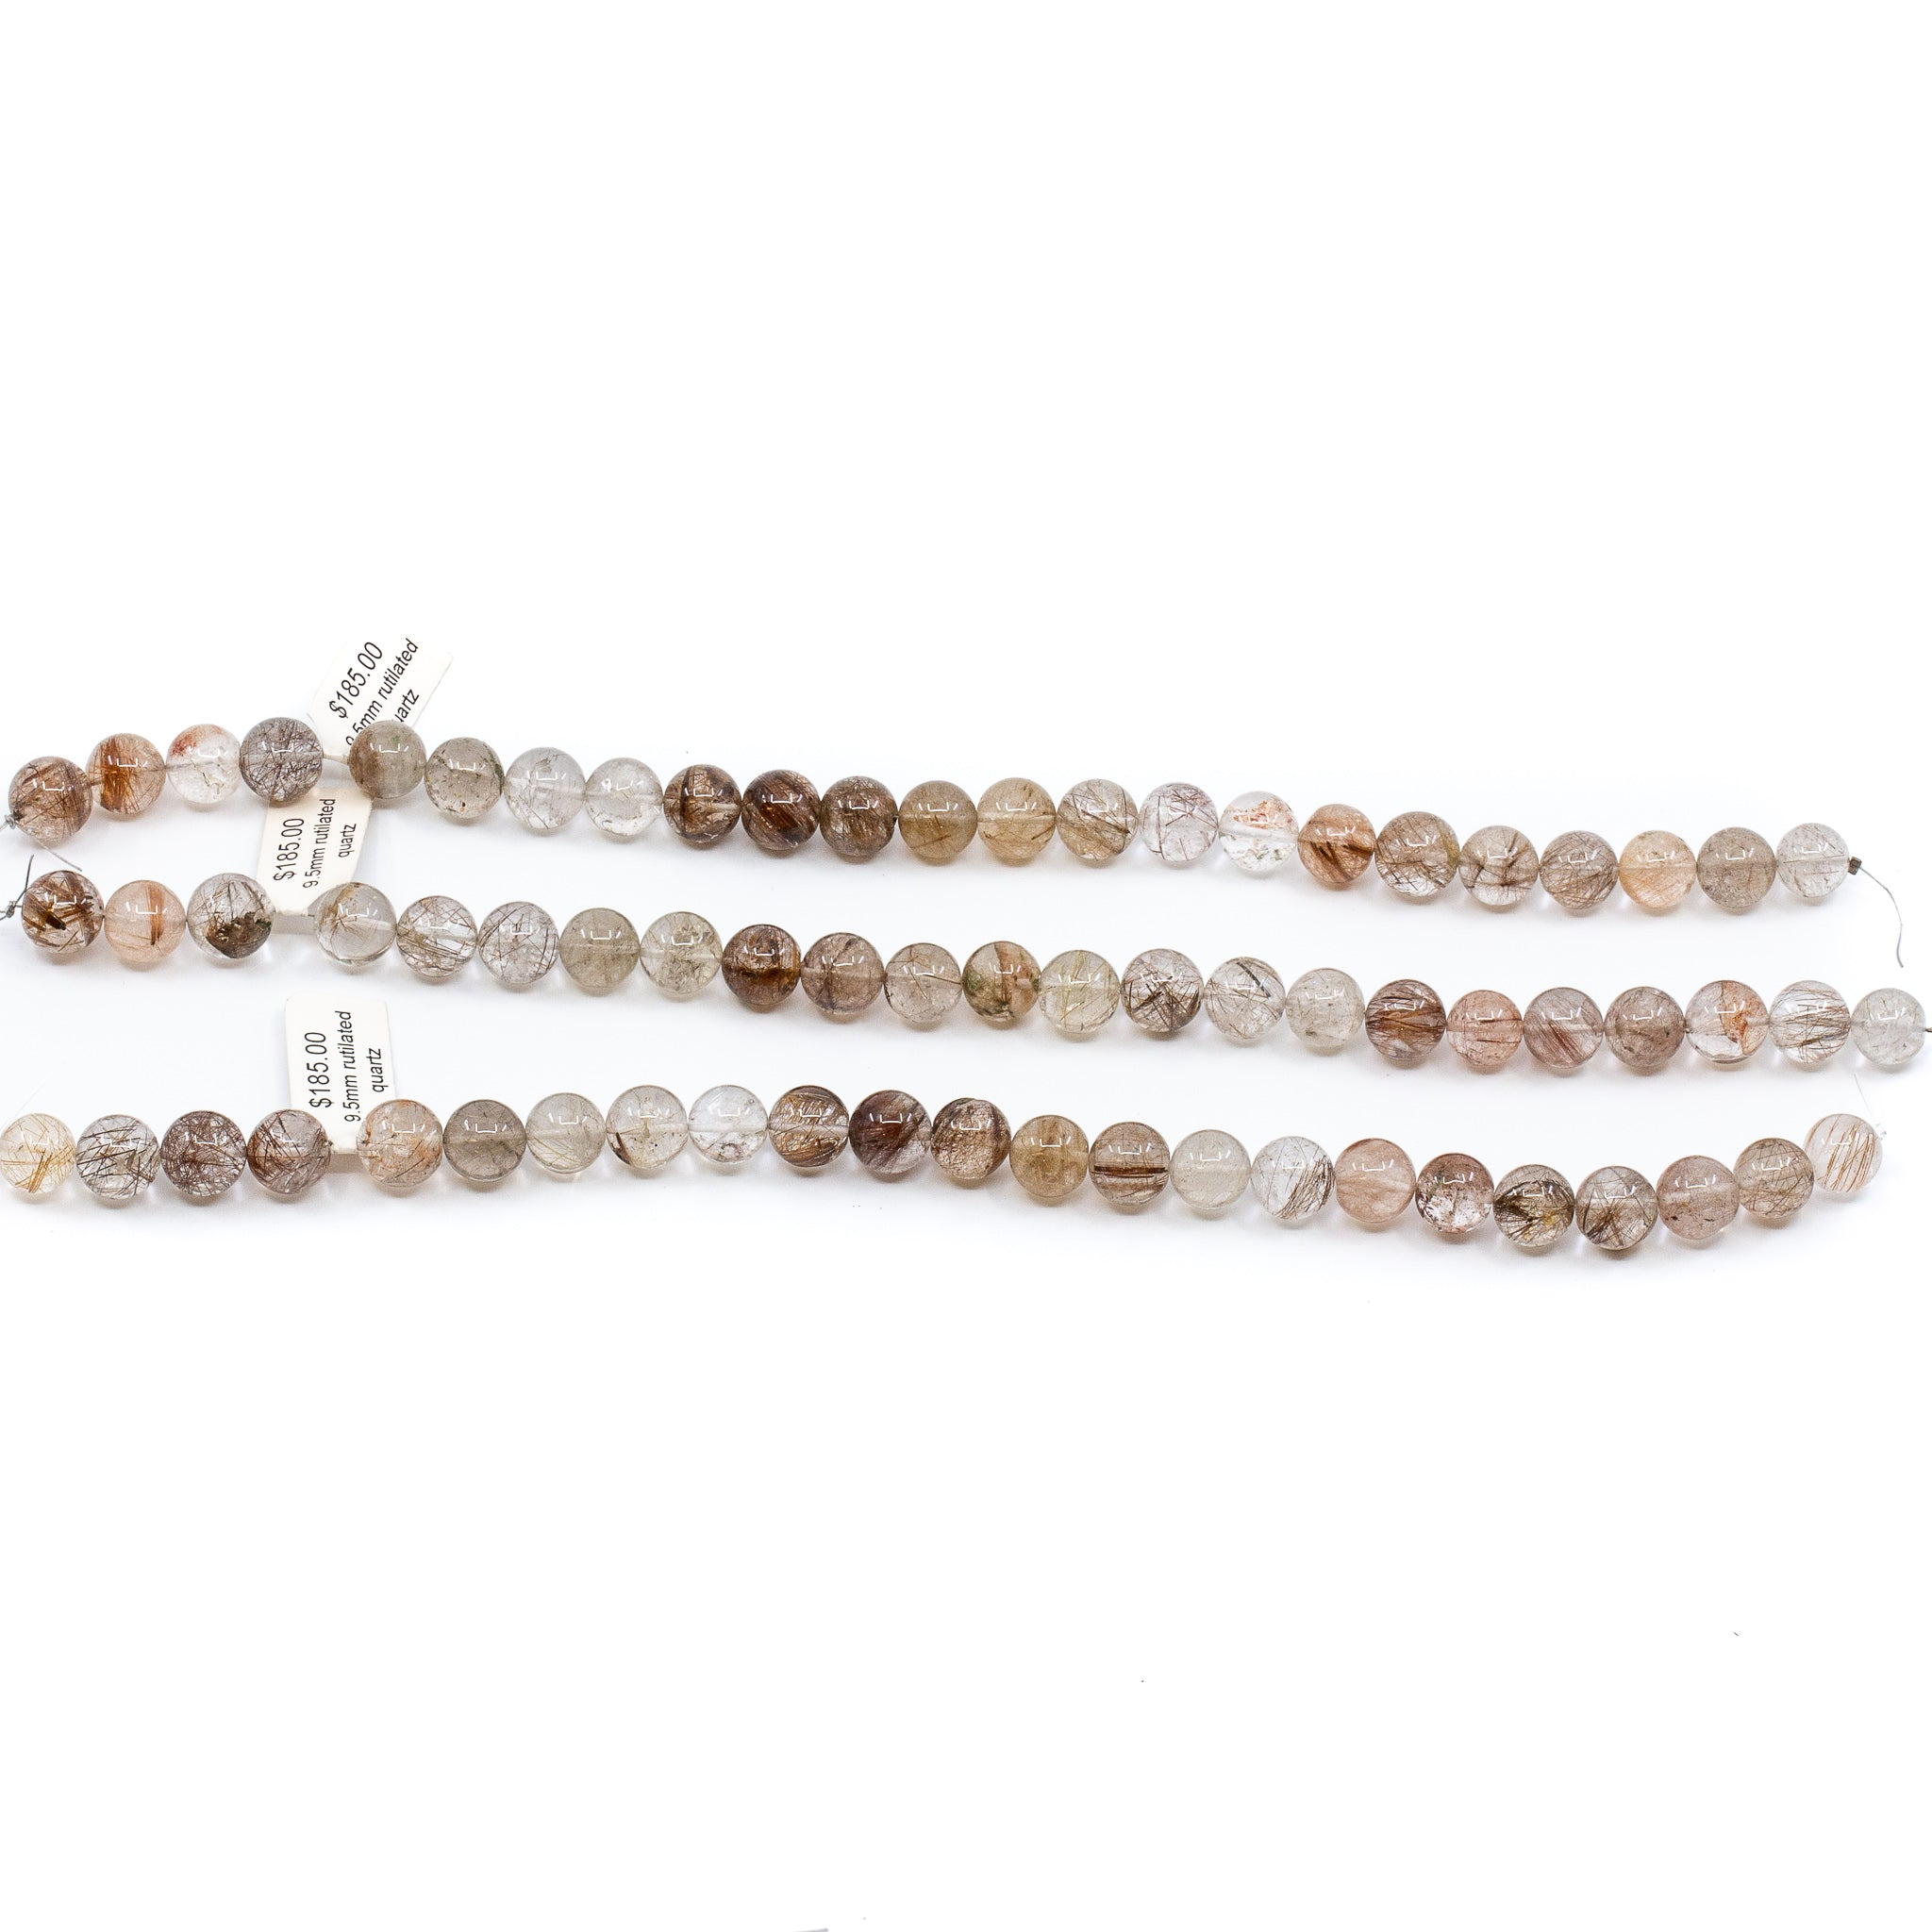 Rutilated Quartz Strand - 9.5mm Smooth Round